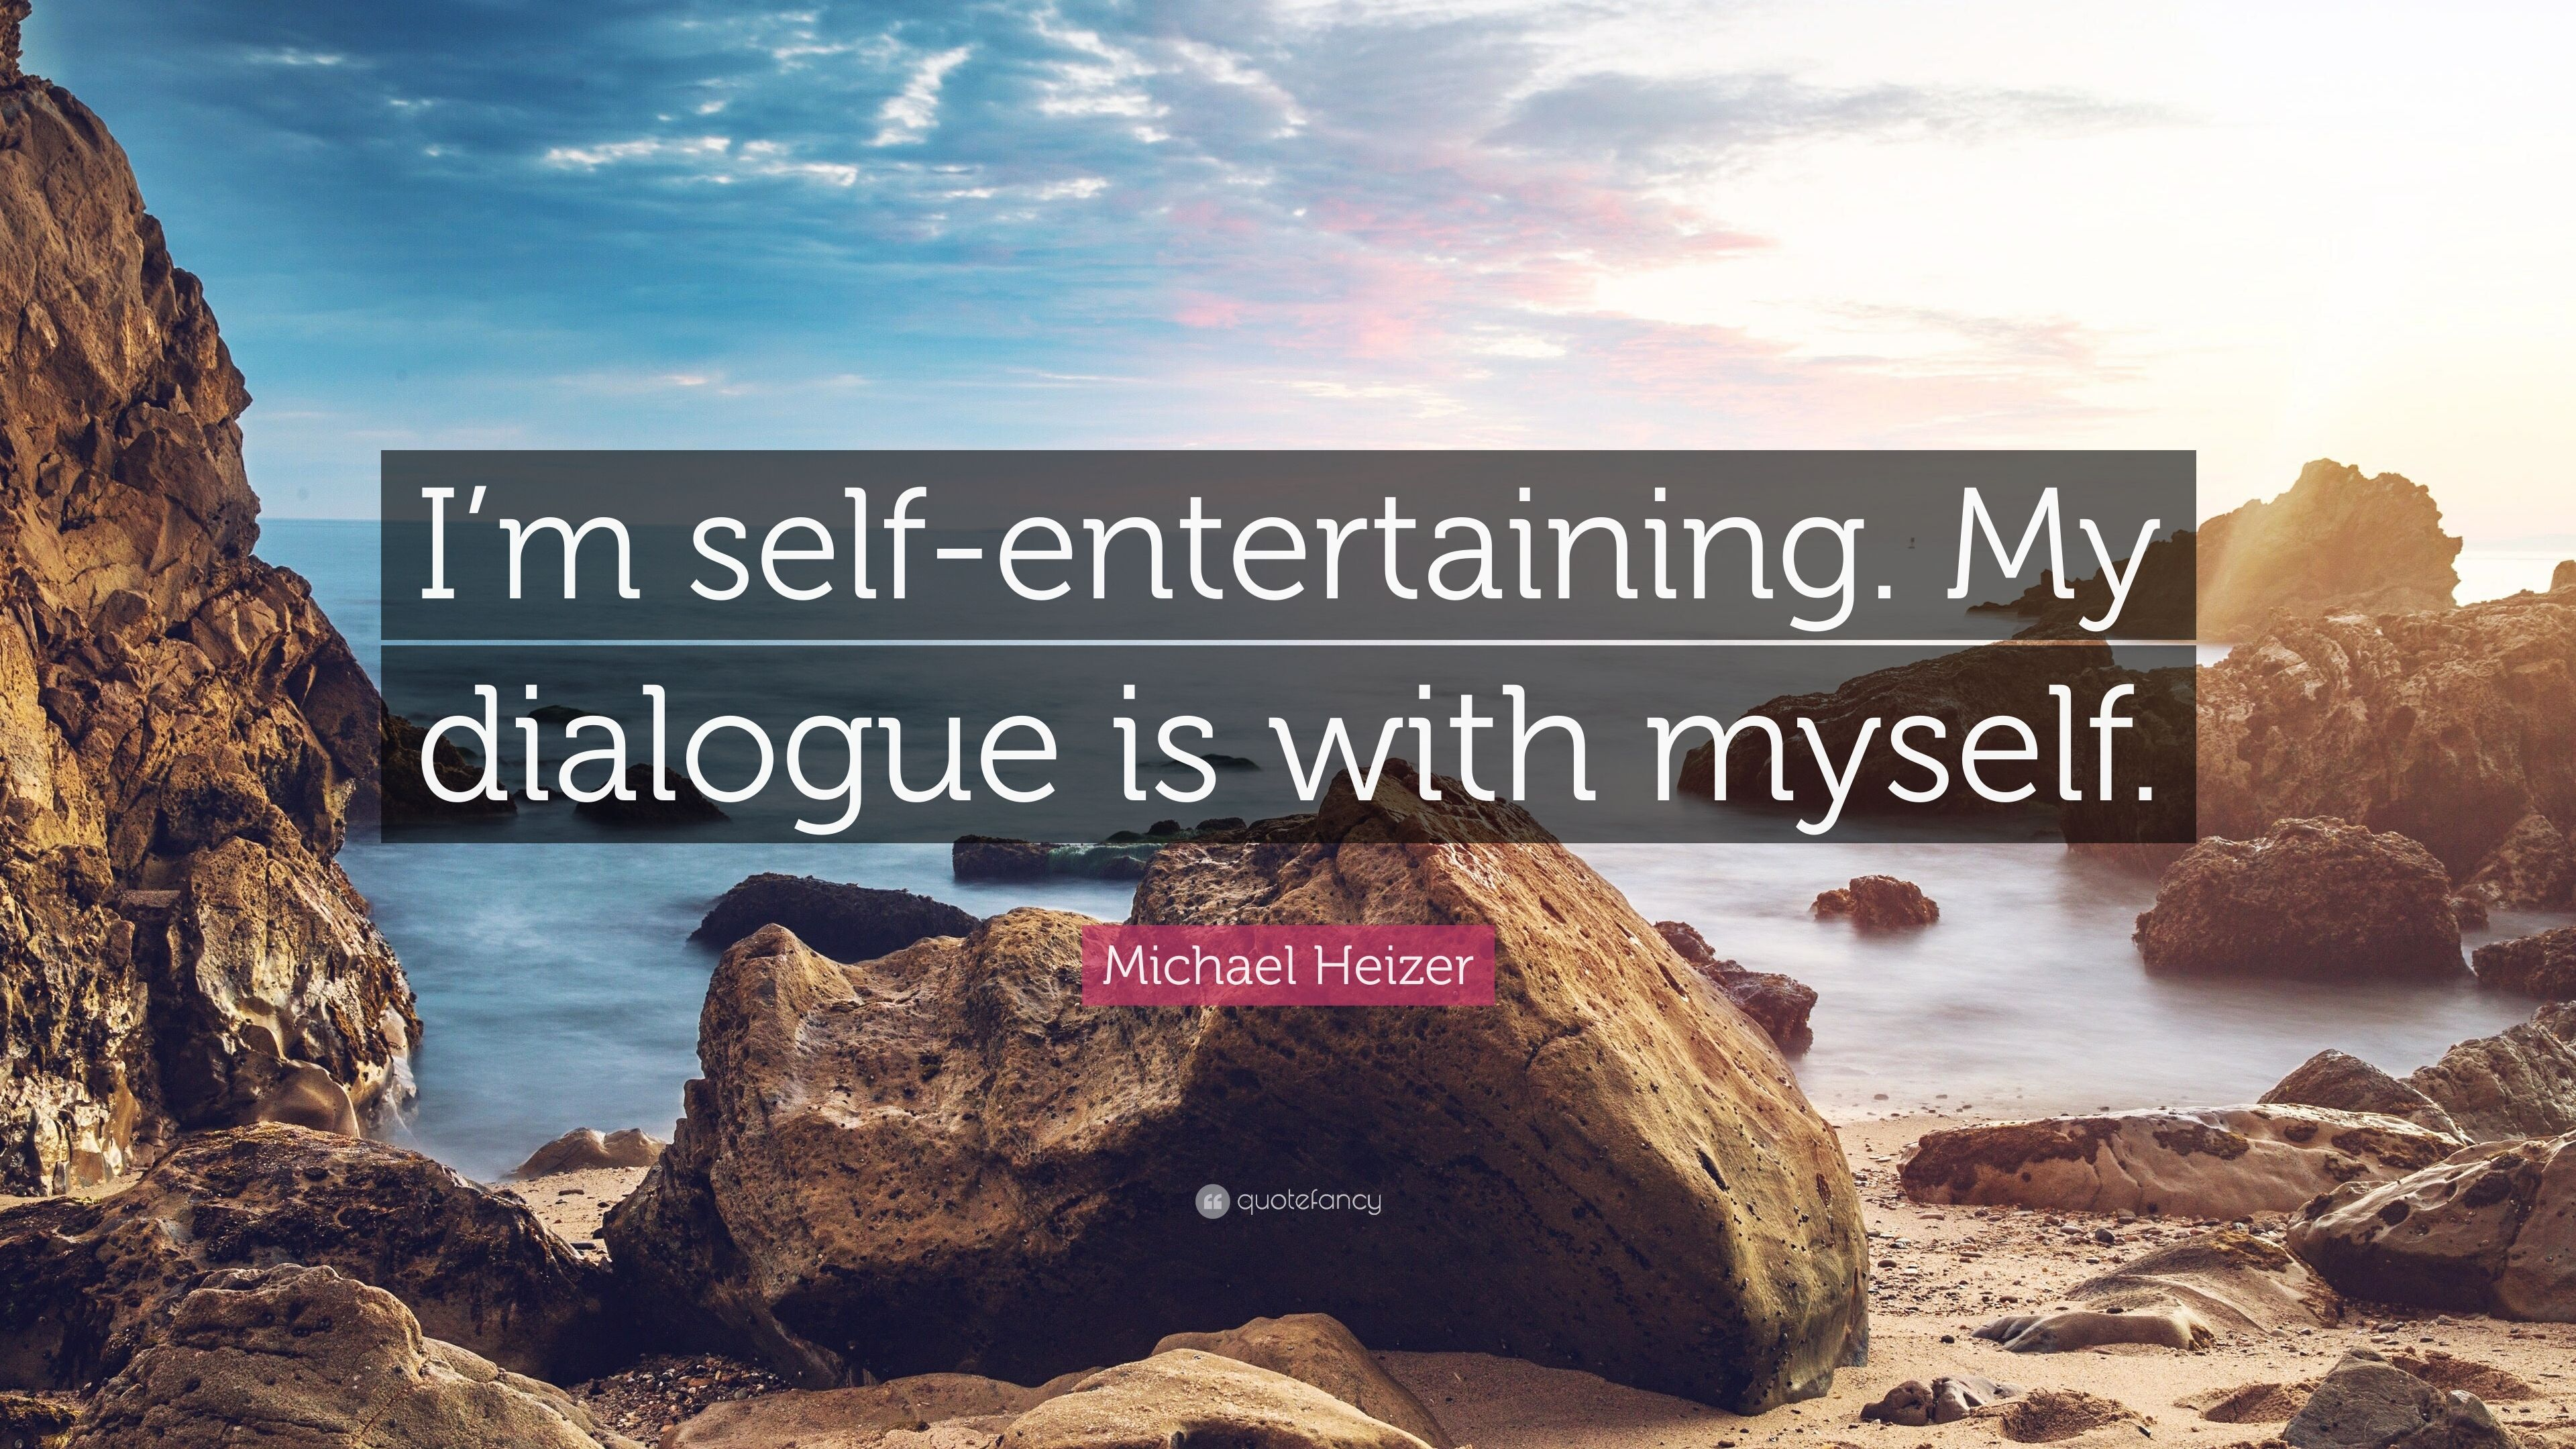 Michael heizer quotes